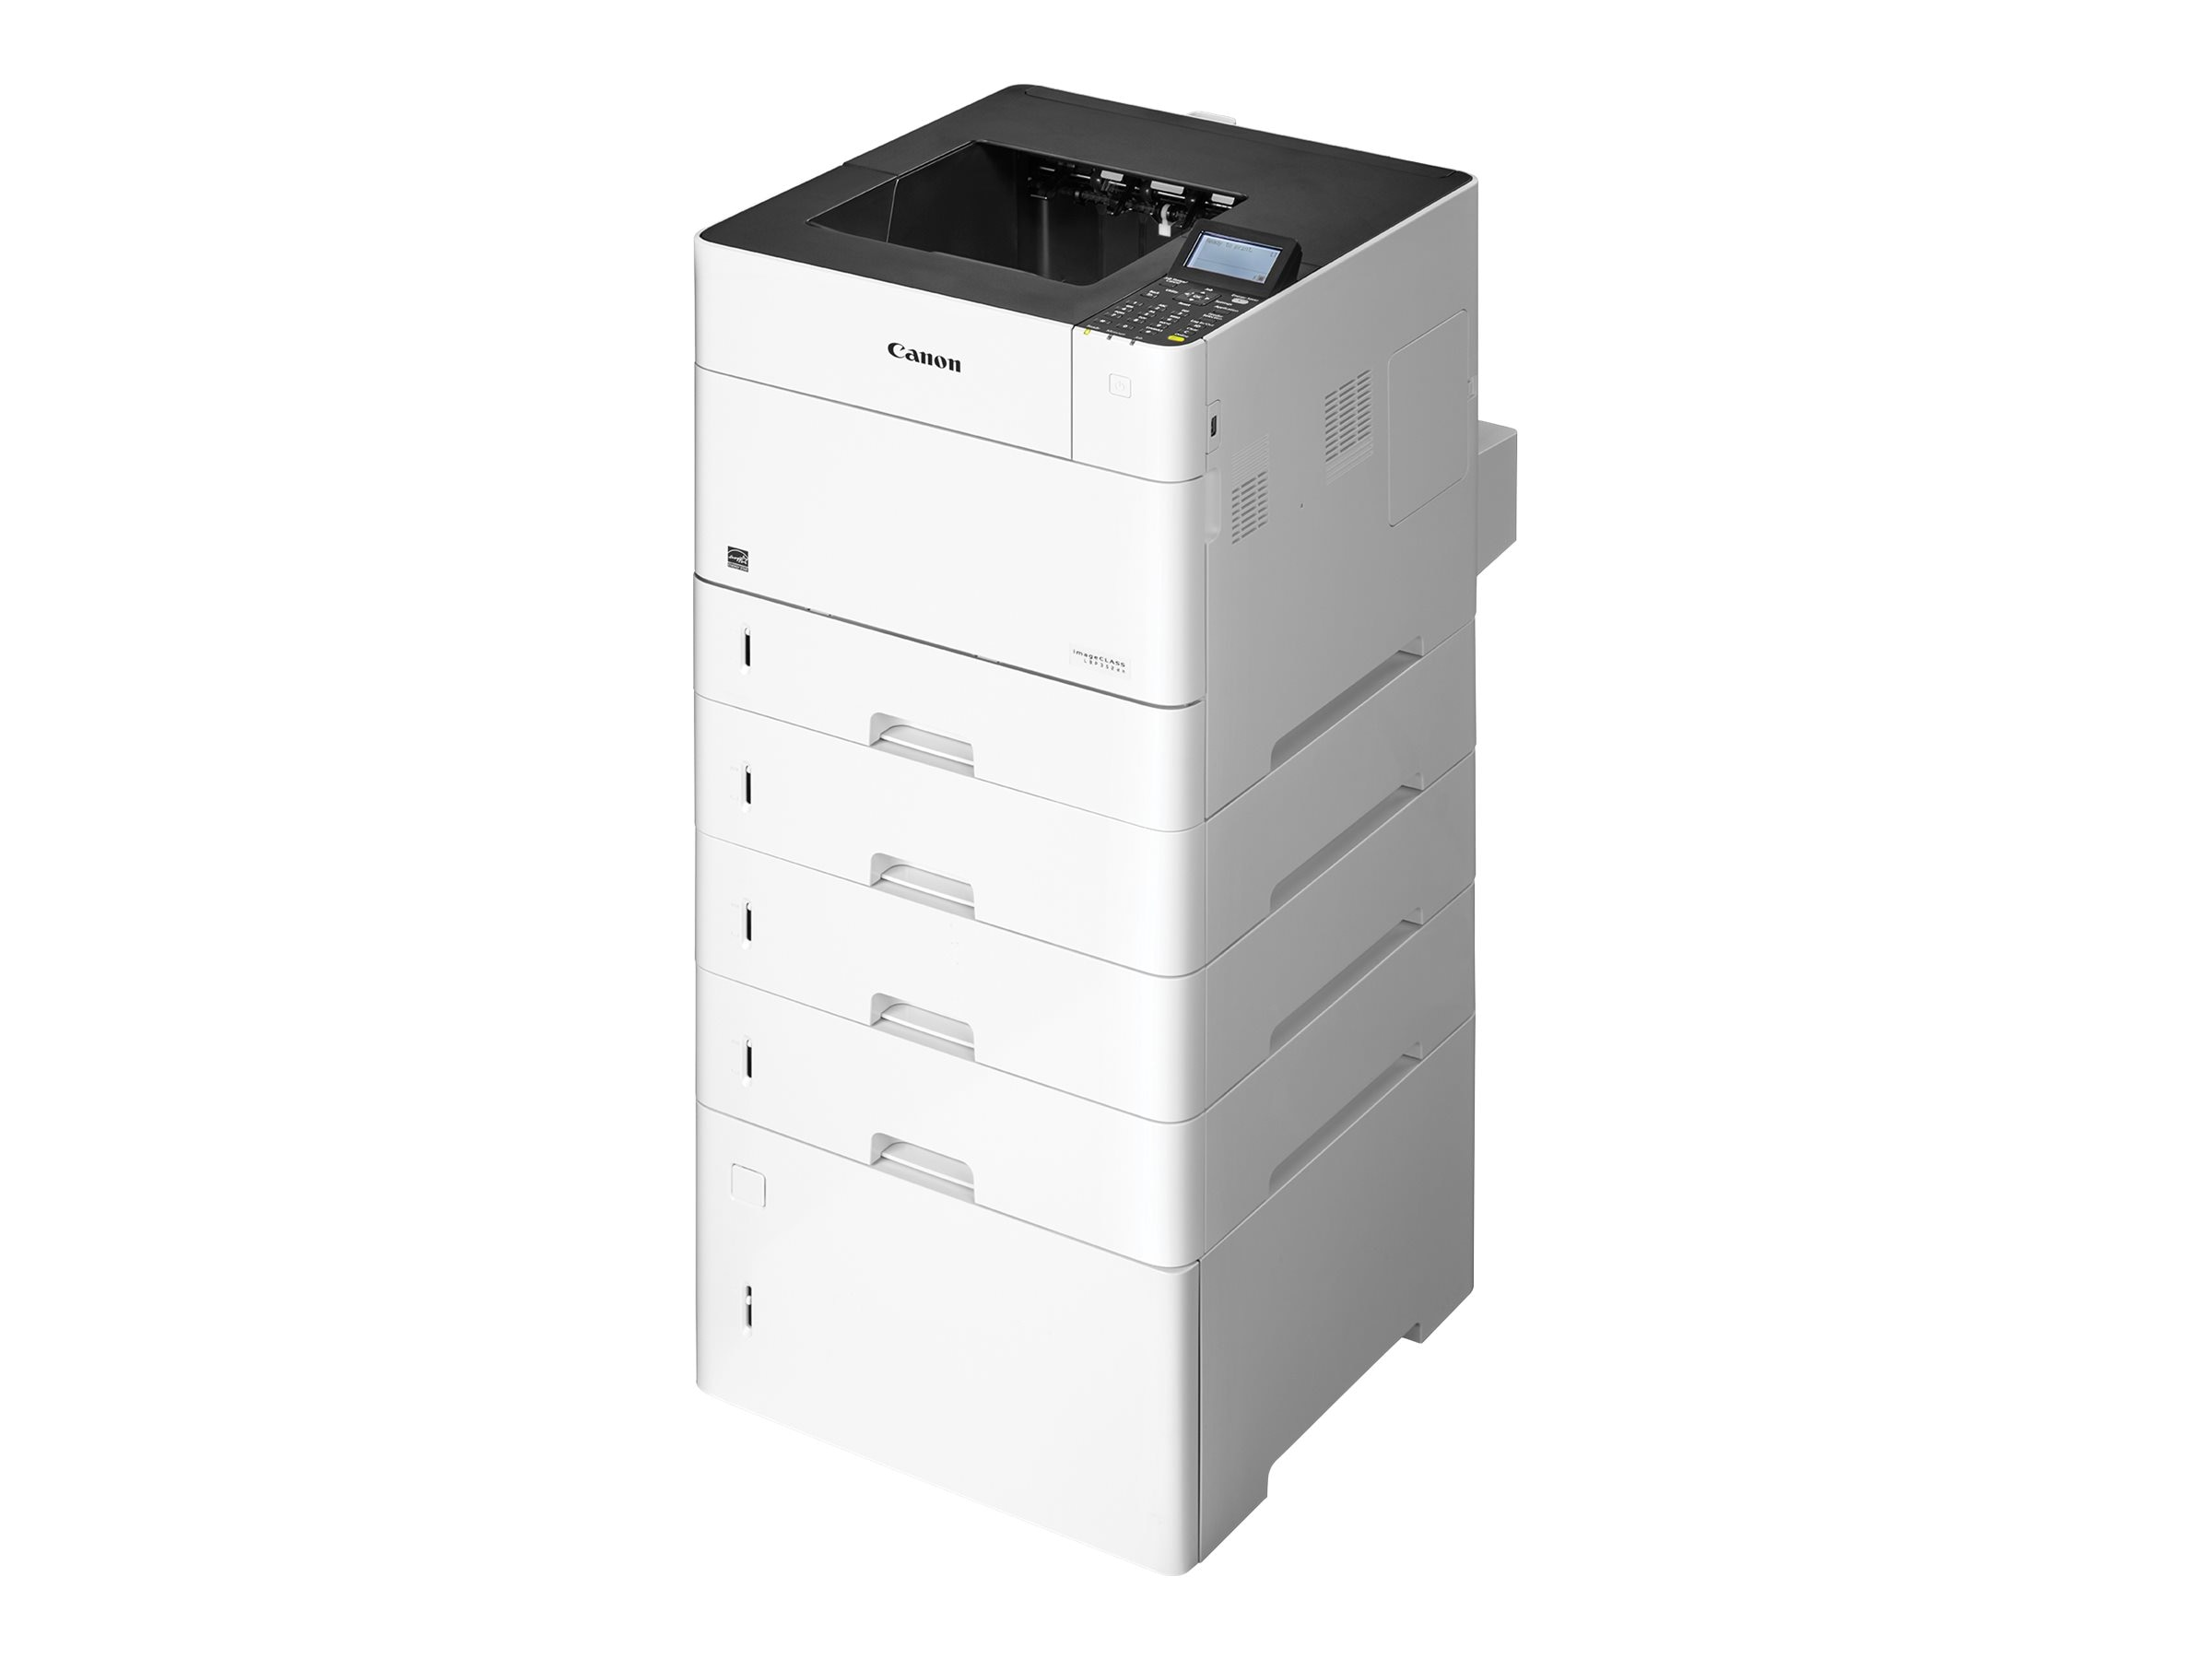 Canon imageCLASS LBP351dn Printer, 0562C002, 31890448, Printers - Laser & LED (monochrome)